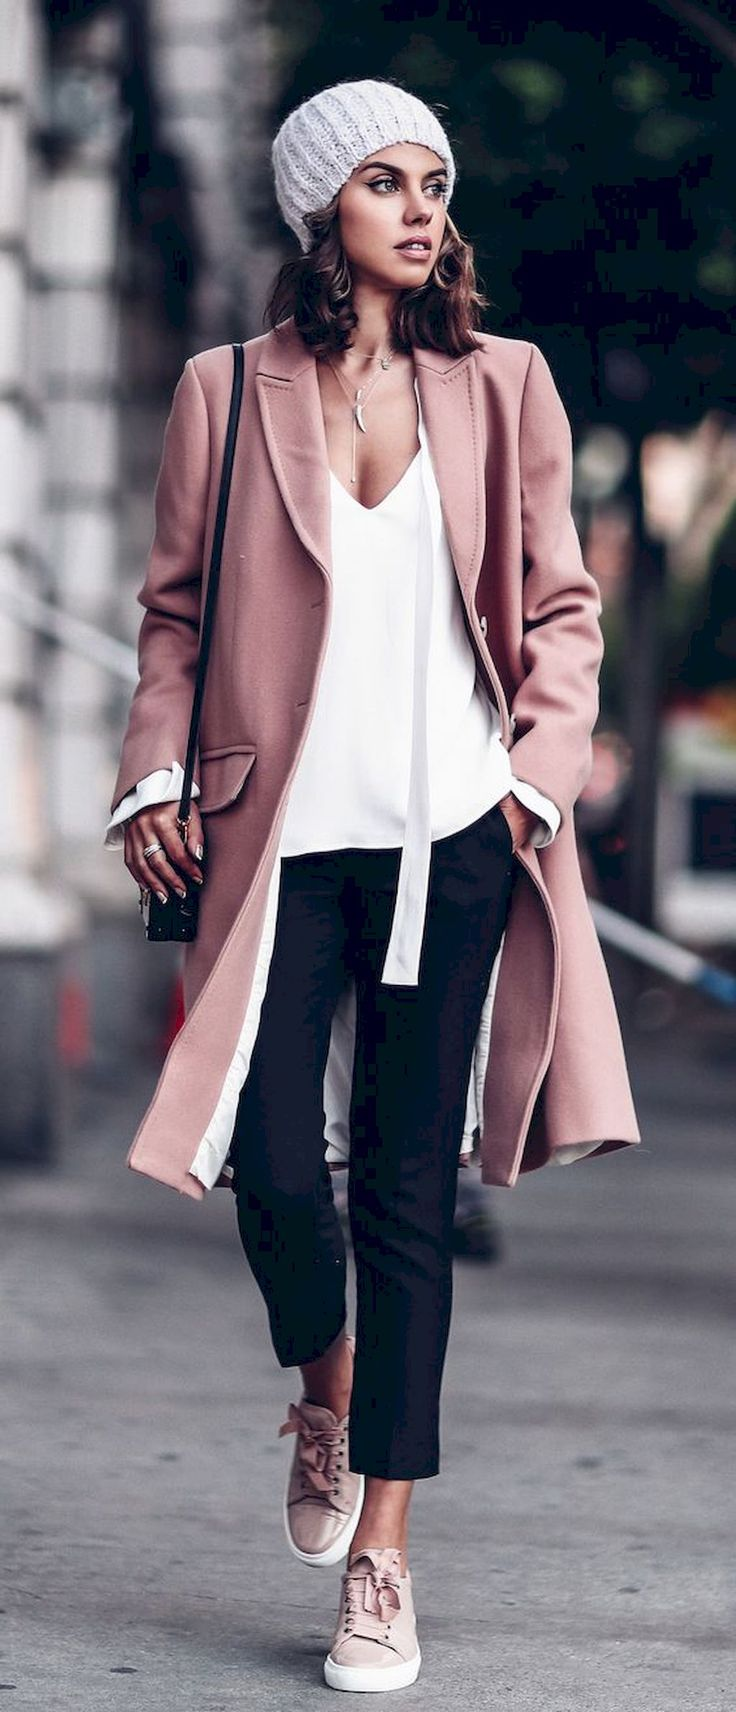 Fashion trends 2018 casual wear 400-Mile Sale - Yard Sale Locations